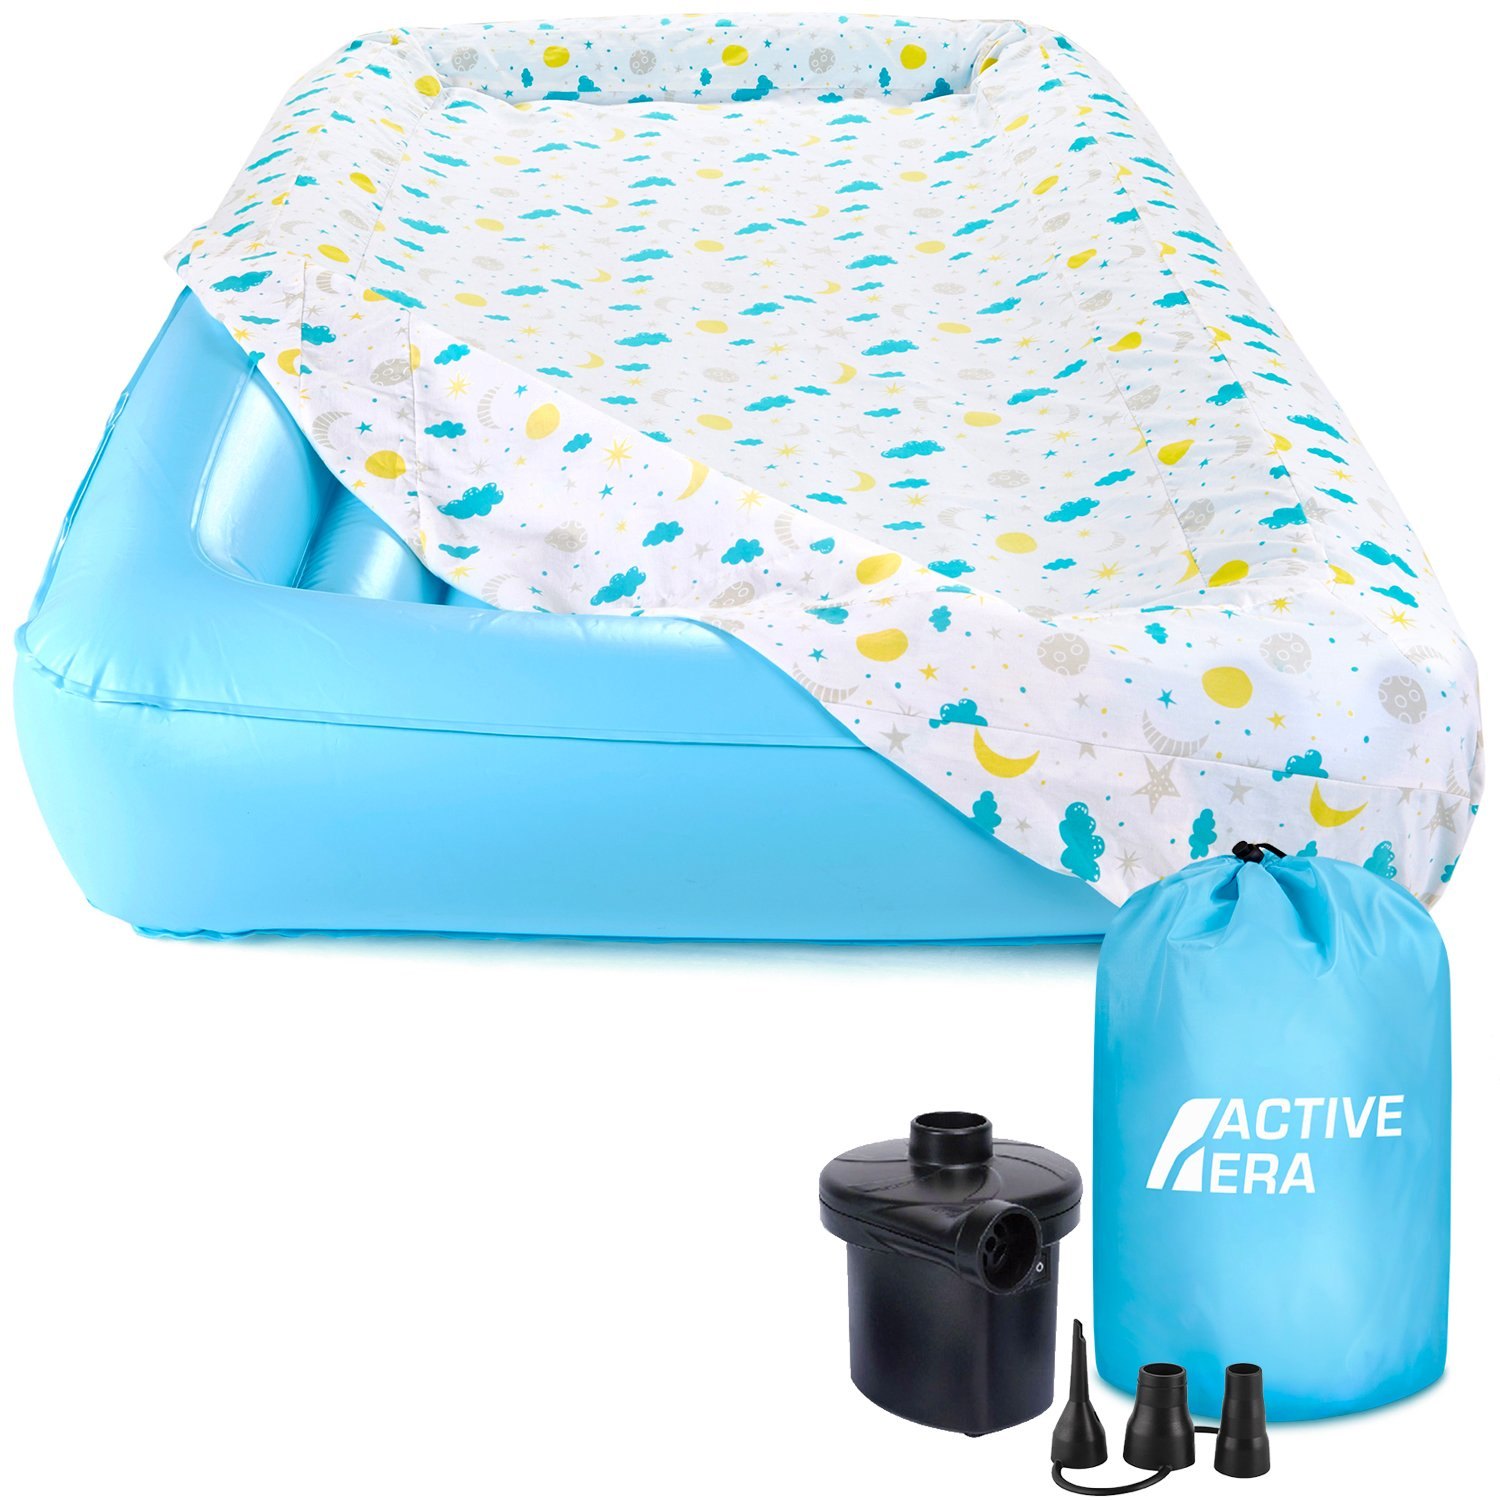 Active Era Kids Air Mattress - Portable Inflatable Travel Air Bed with Toddler Safety Bumpers, Soft Washable Fitted Sheet and Fast AC Pump (60 Second Inflation) by Active Era